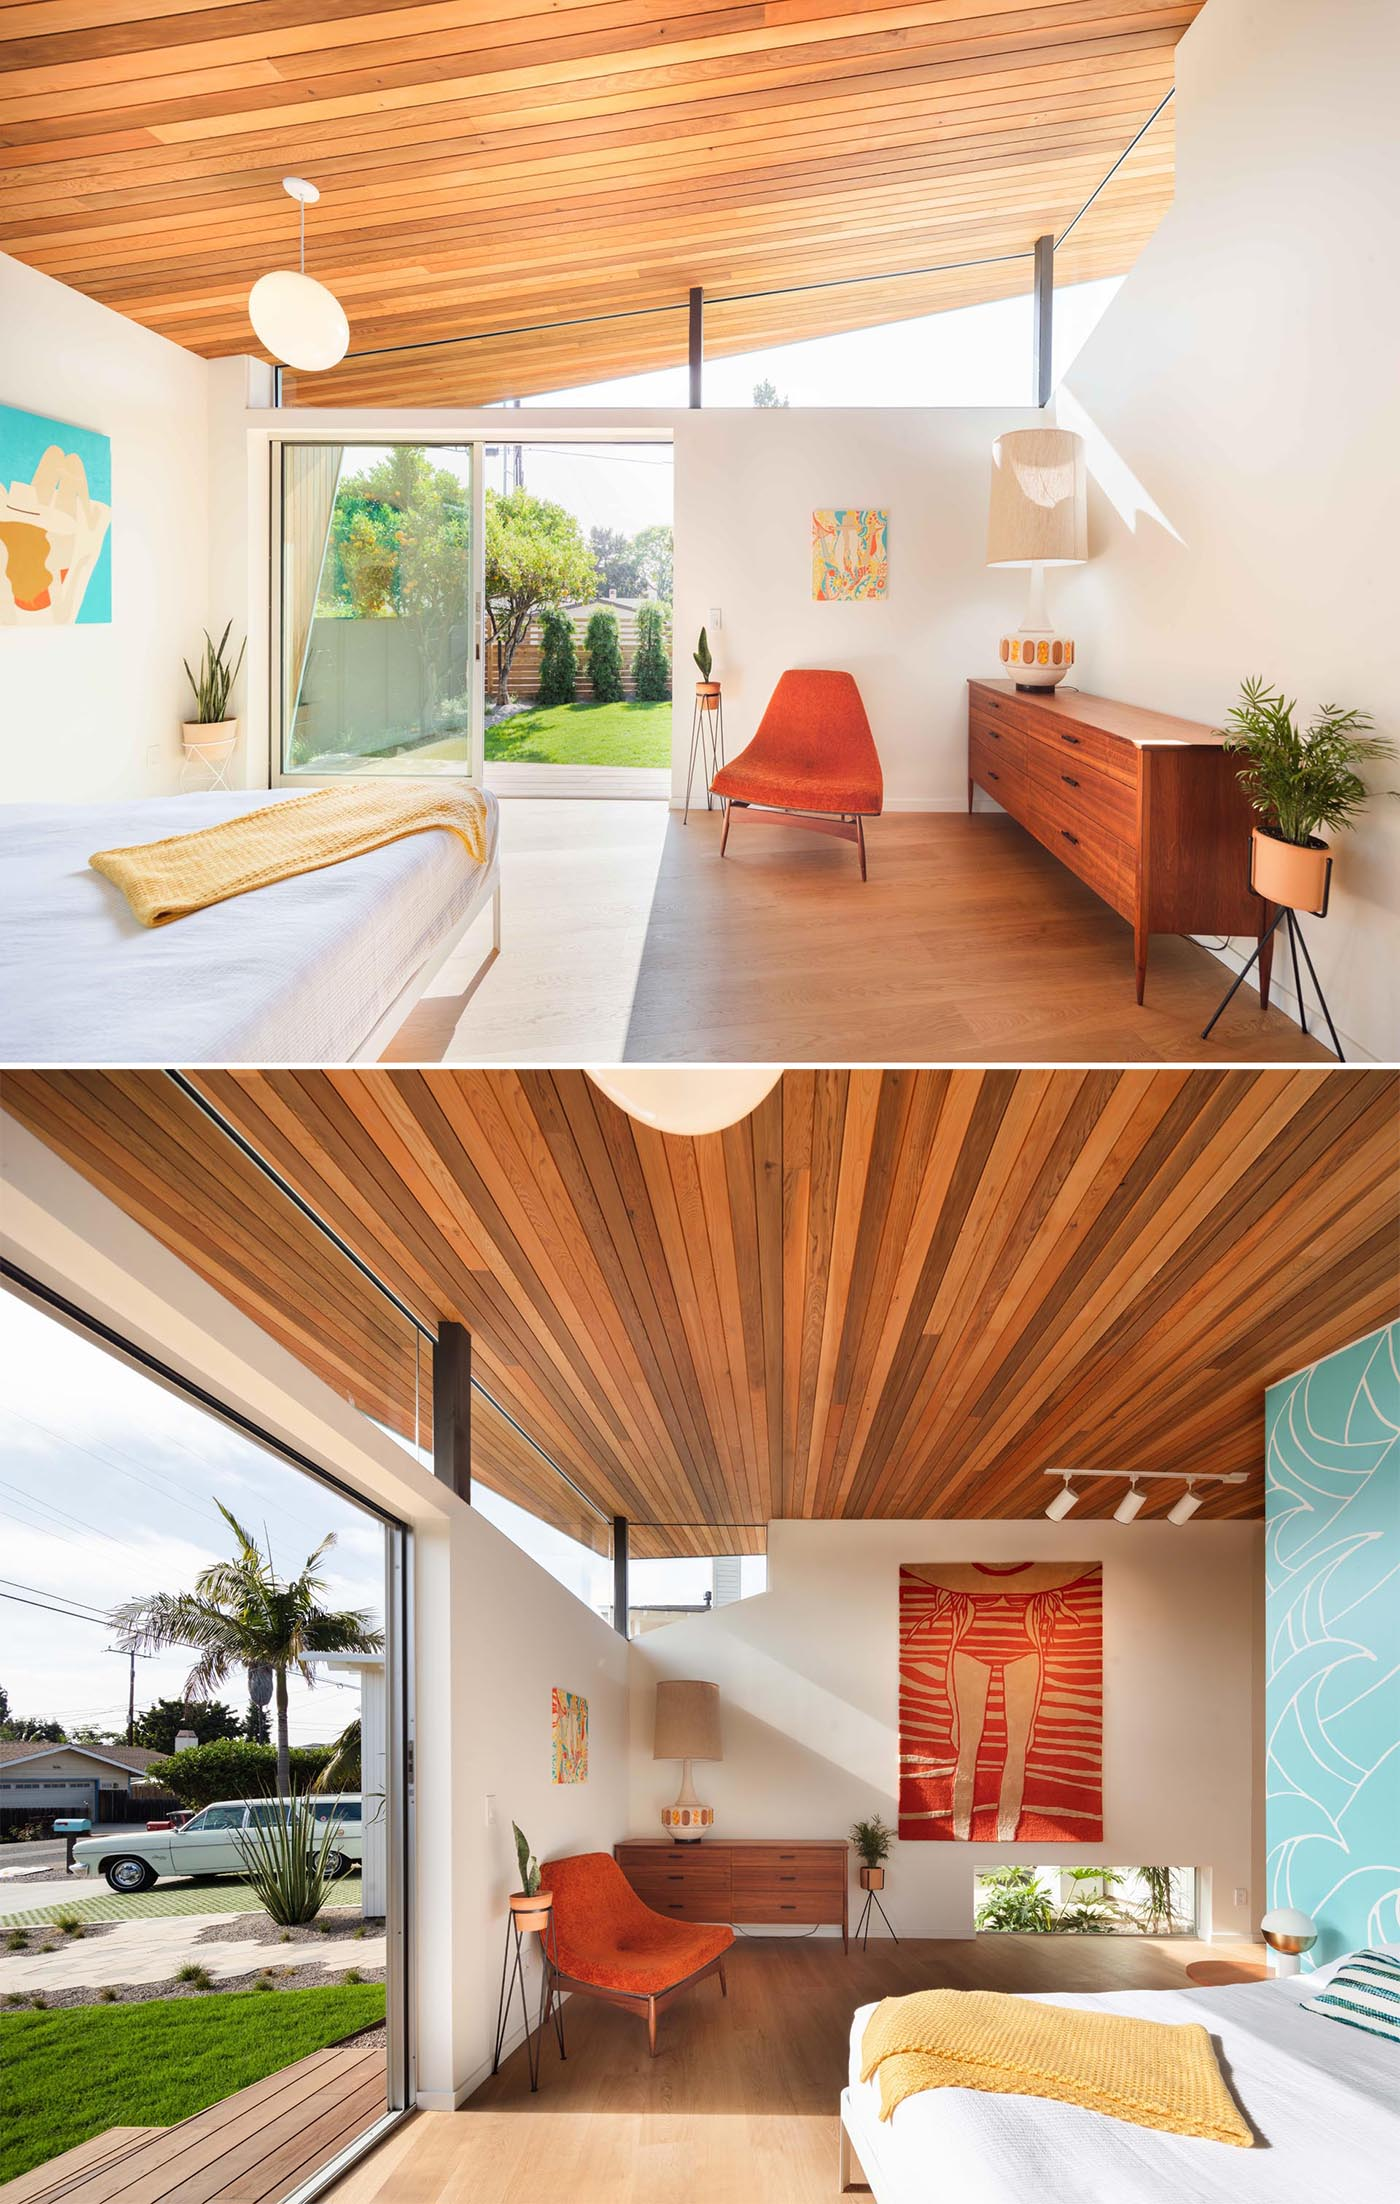 This new mid-century modern inspired master bedroom at the front of the house shows the angled wood ceiling and the wrap around clerestory windows.